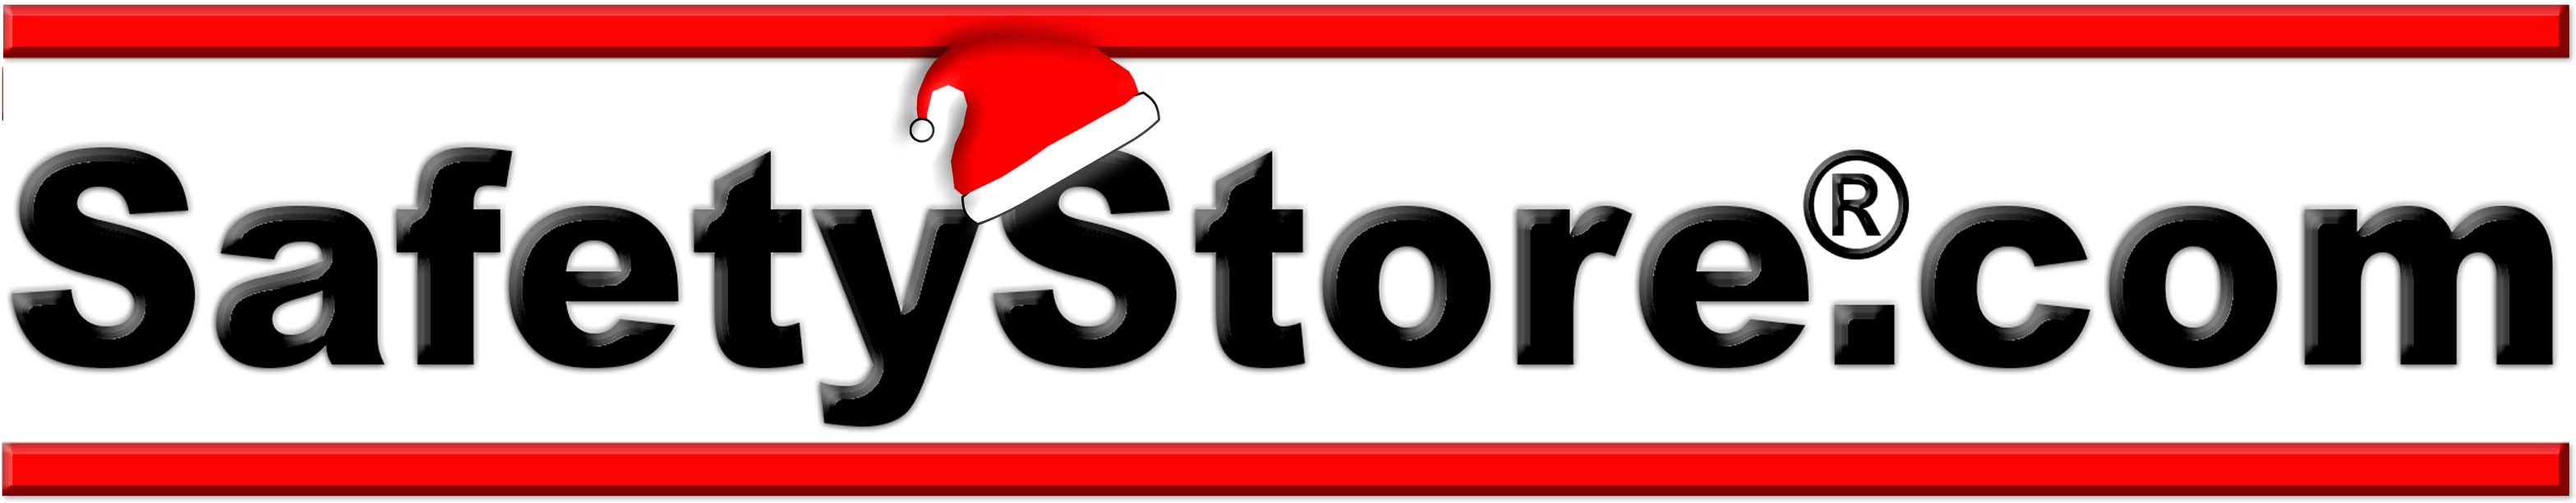 SafetyStore.com Perfect Gifts for the Holidays Your Home for Safety, First Aid Kits and Emergency Preparedness Products